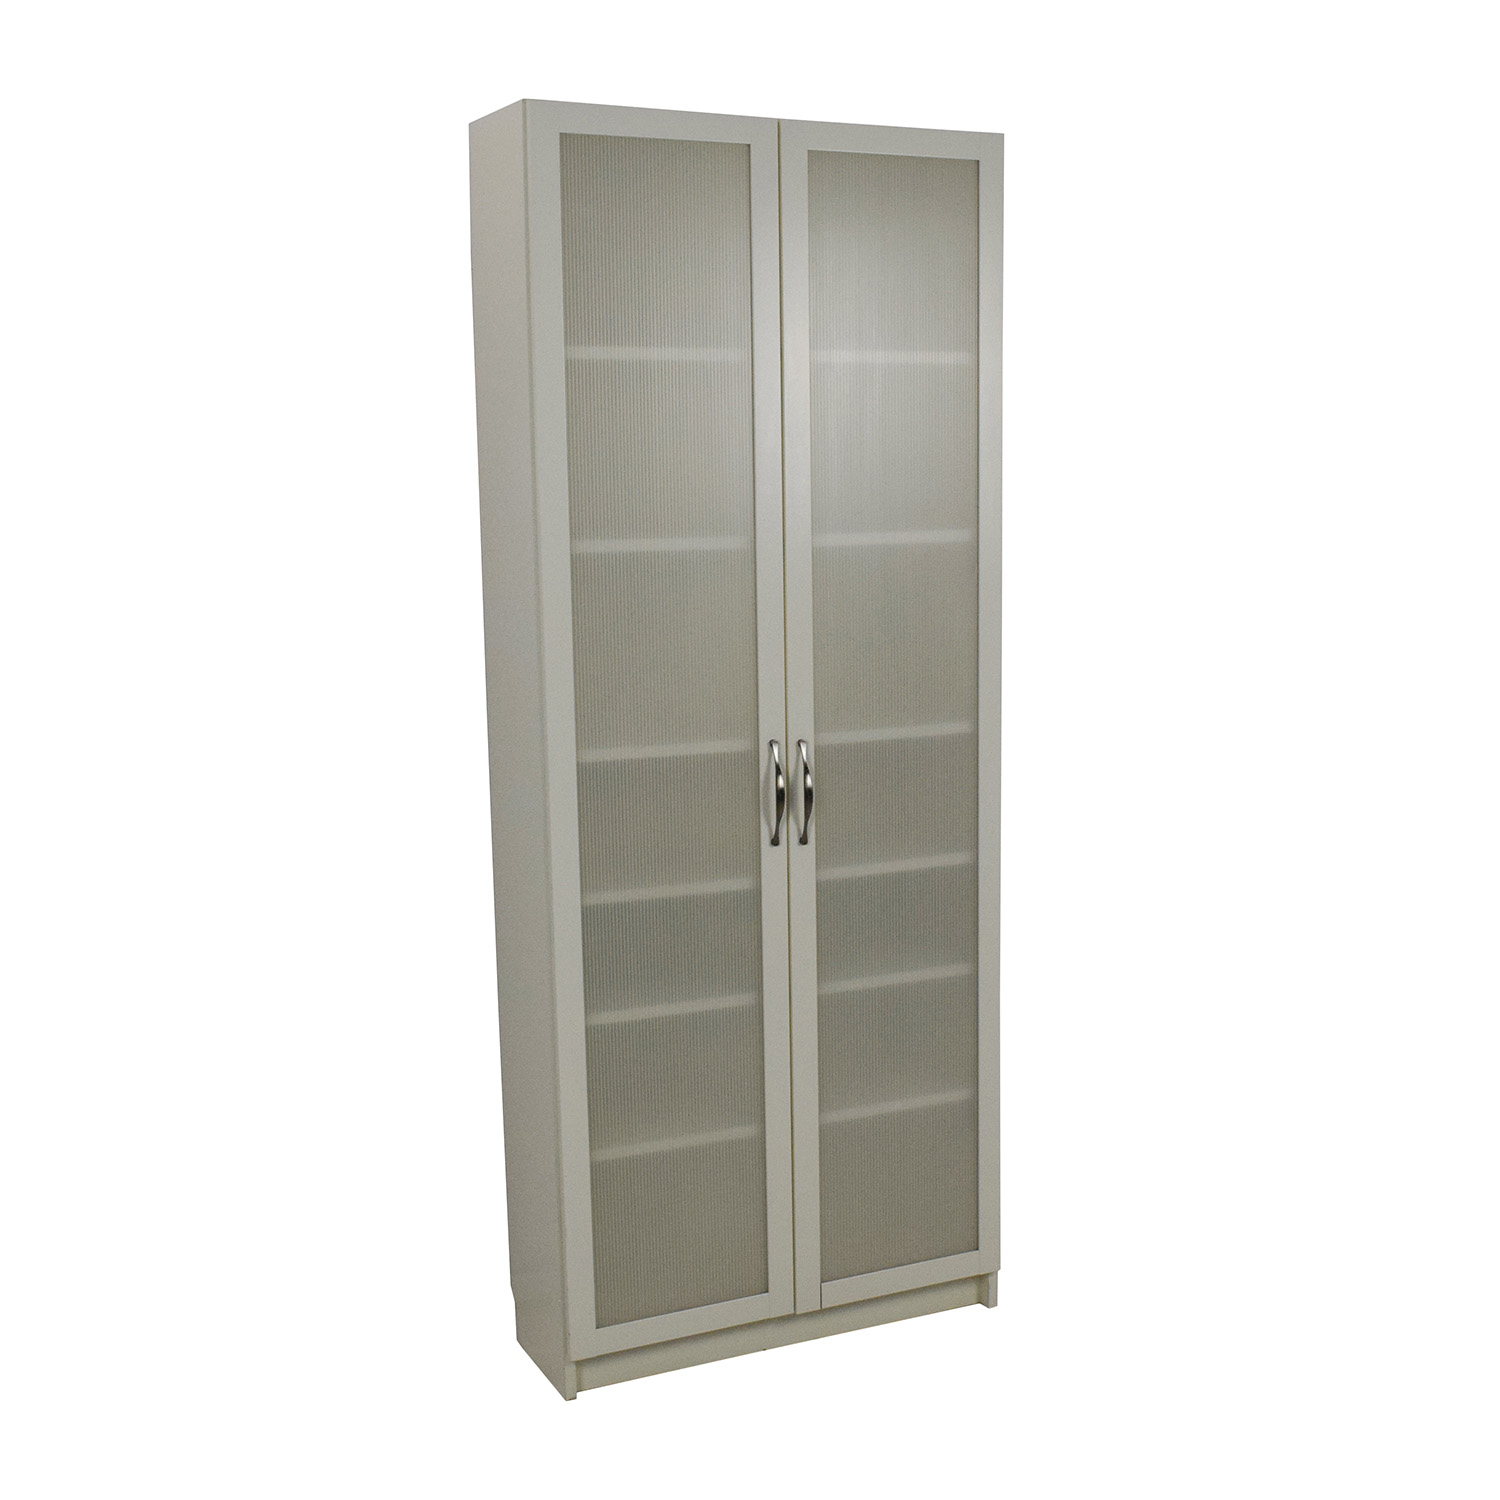 Ikea Storage Cabinets 56 Off Ikea Ikea White Glass Door Cabinet Storage